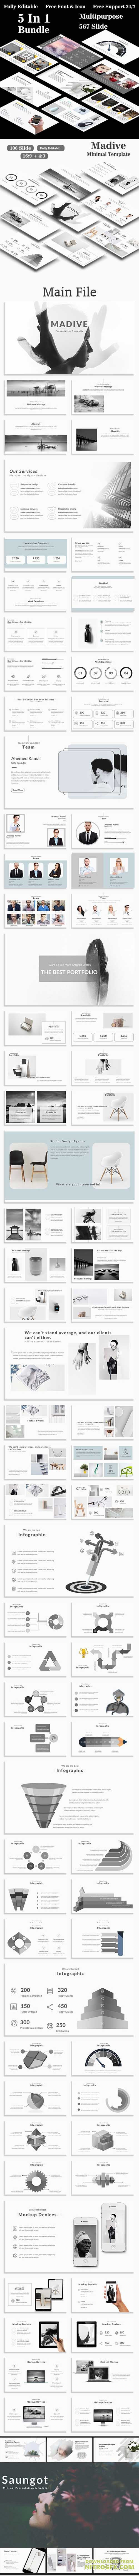 Kendar - 5 in 1 Bundle Multipurpose PowerPoint Template 20690478